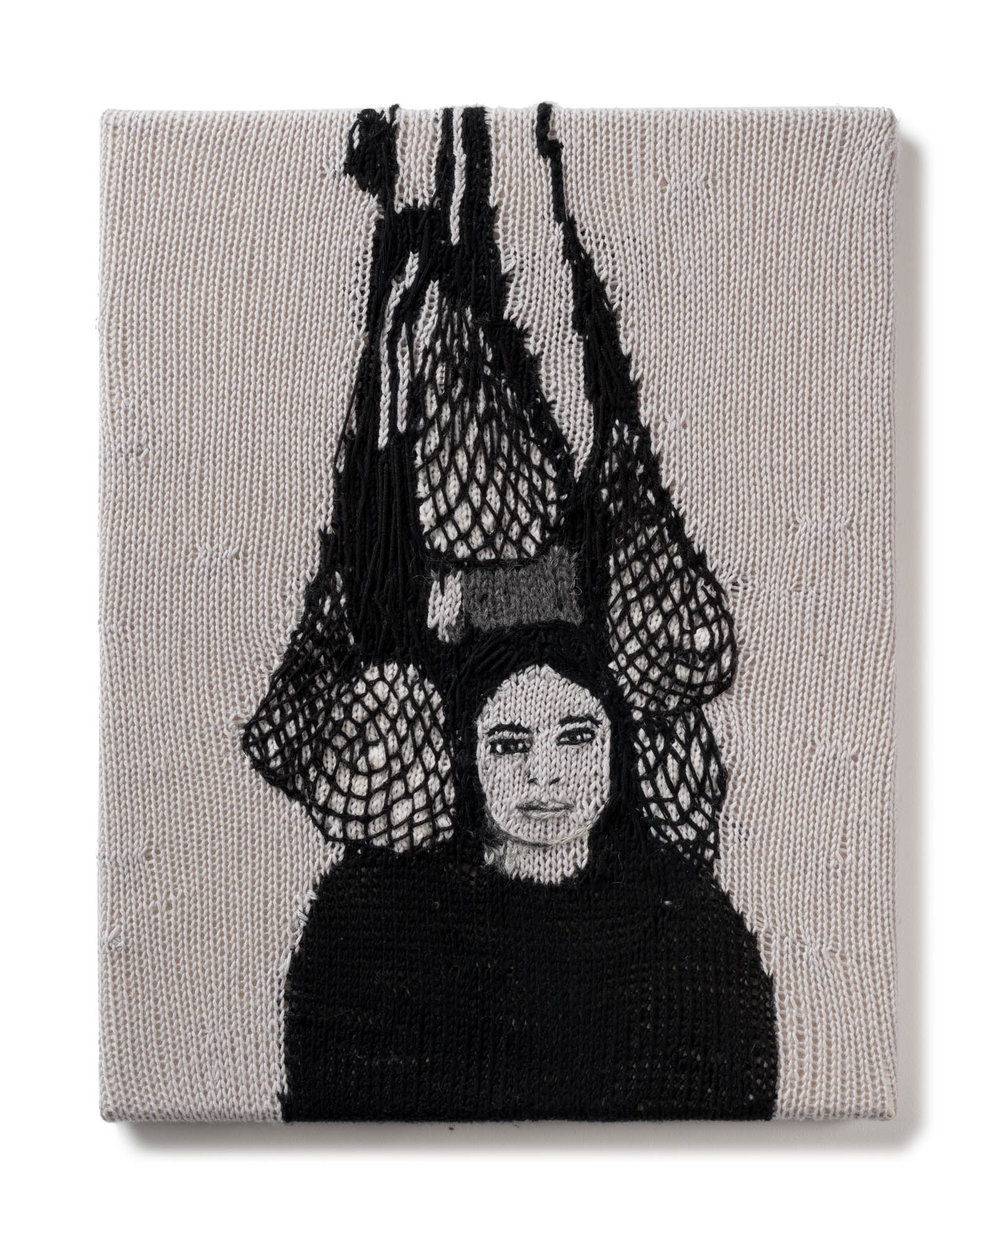 Kate Just, Feminist Fan # 28   (Eva Hesse photographed by Hermann Landshoff), 2016